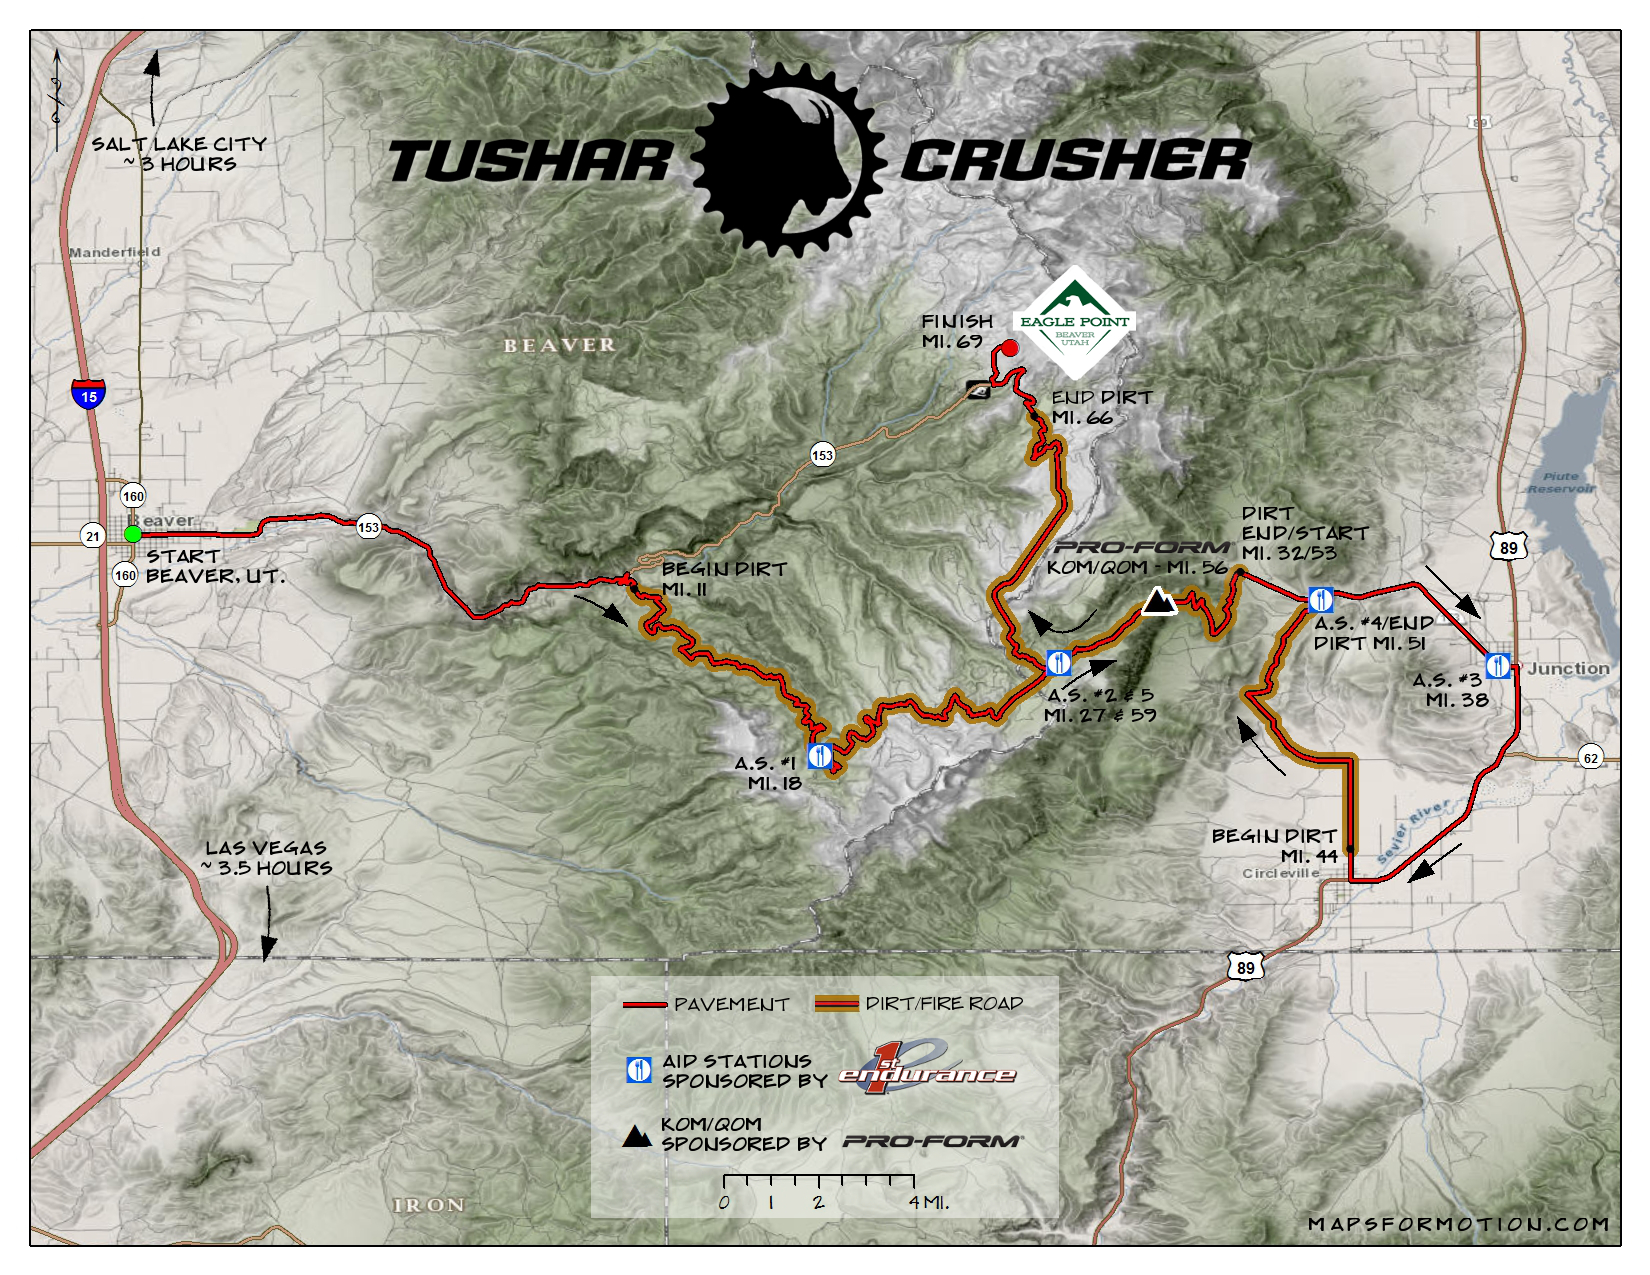 Course Map and Description | Crusher in the Tushar | road + dirt on adot road conditions, brian head road conditions, memphis road conditions, udot road conditions, oregon road conditions, arches national park road conditions, usa map road conditions, nj road conditions, cleveland road conditions, interstate 80 road conditions, nashville road conditions, pikes peak road conditions, north carolina road conditions, kauai road conditions, chicago road conditions, kentucky road conditions, southeast wyoming road conditions, togwotee pass road conditions, pagosa springs road conditions, flagstaff road conditions,